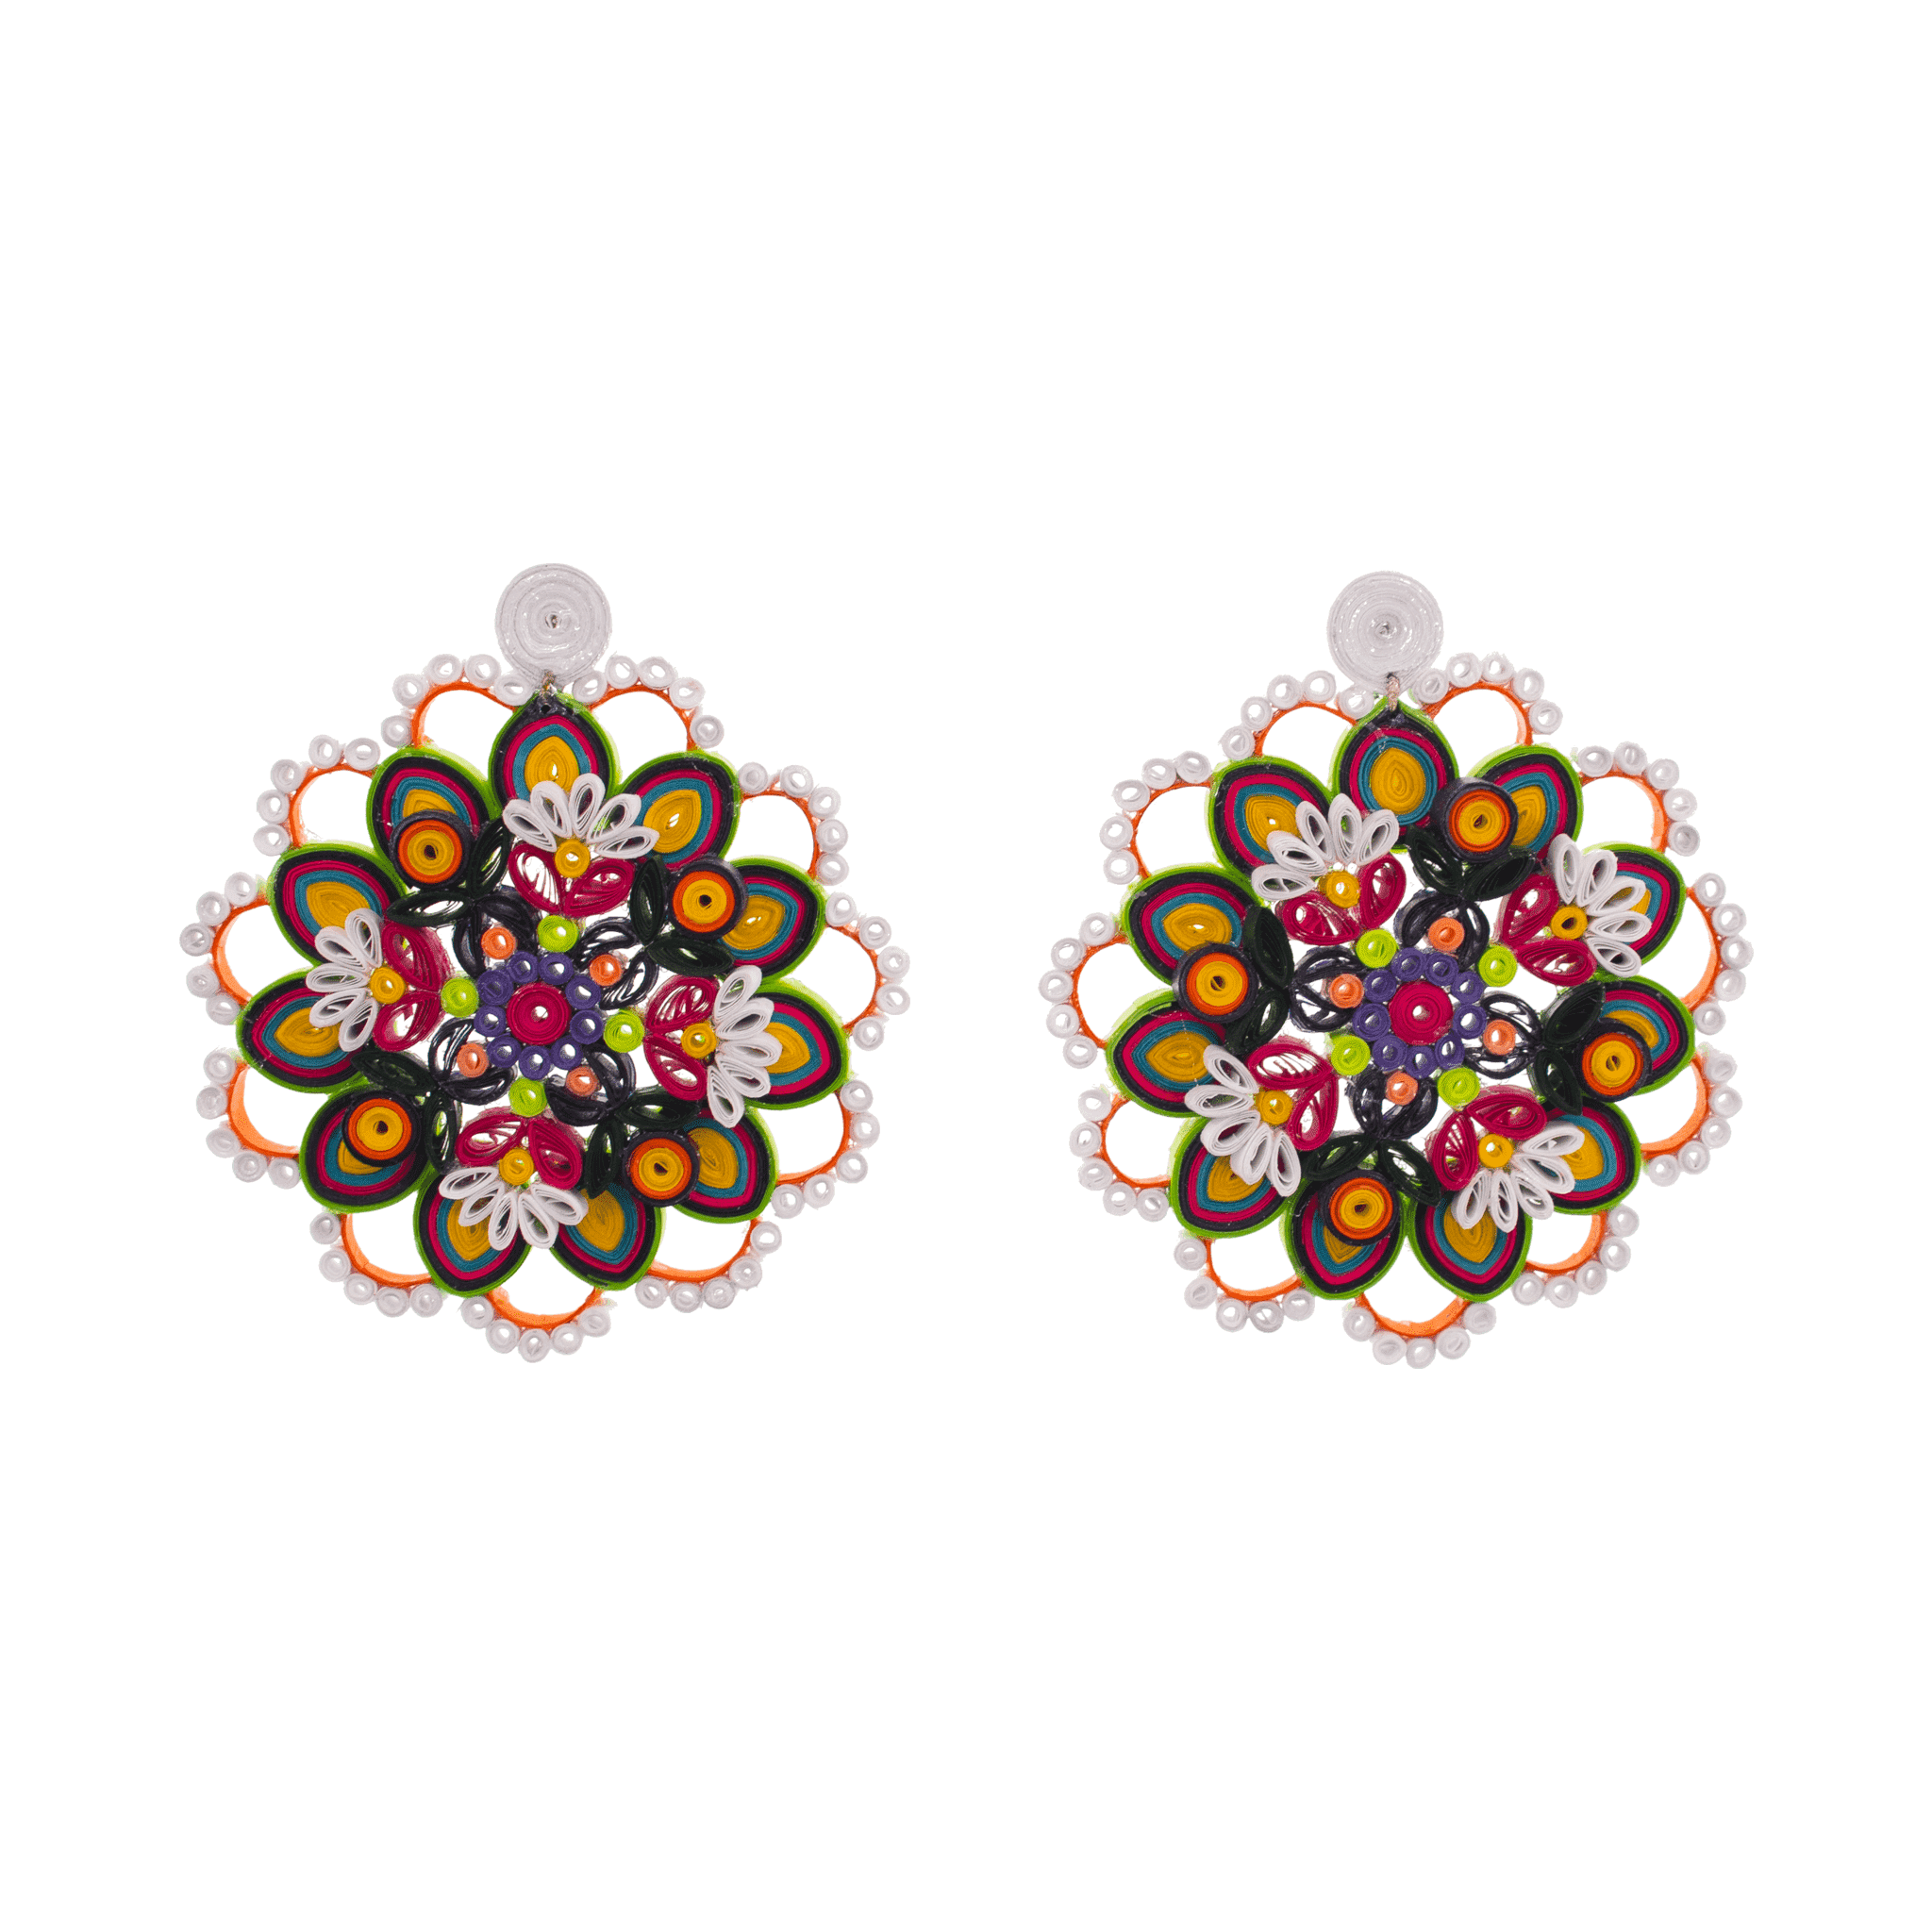 Click to shop the - Mandala Flower Quilled Earrings